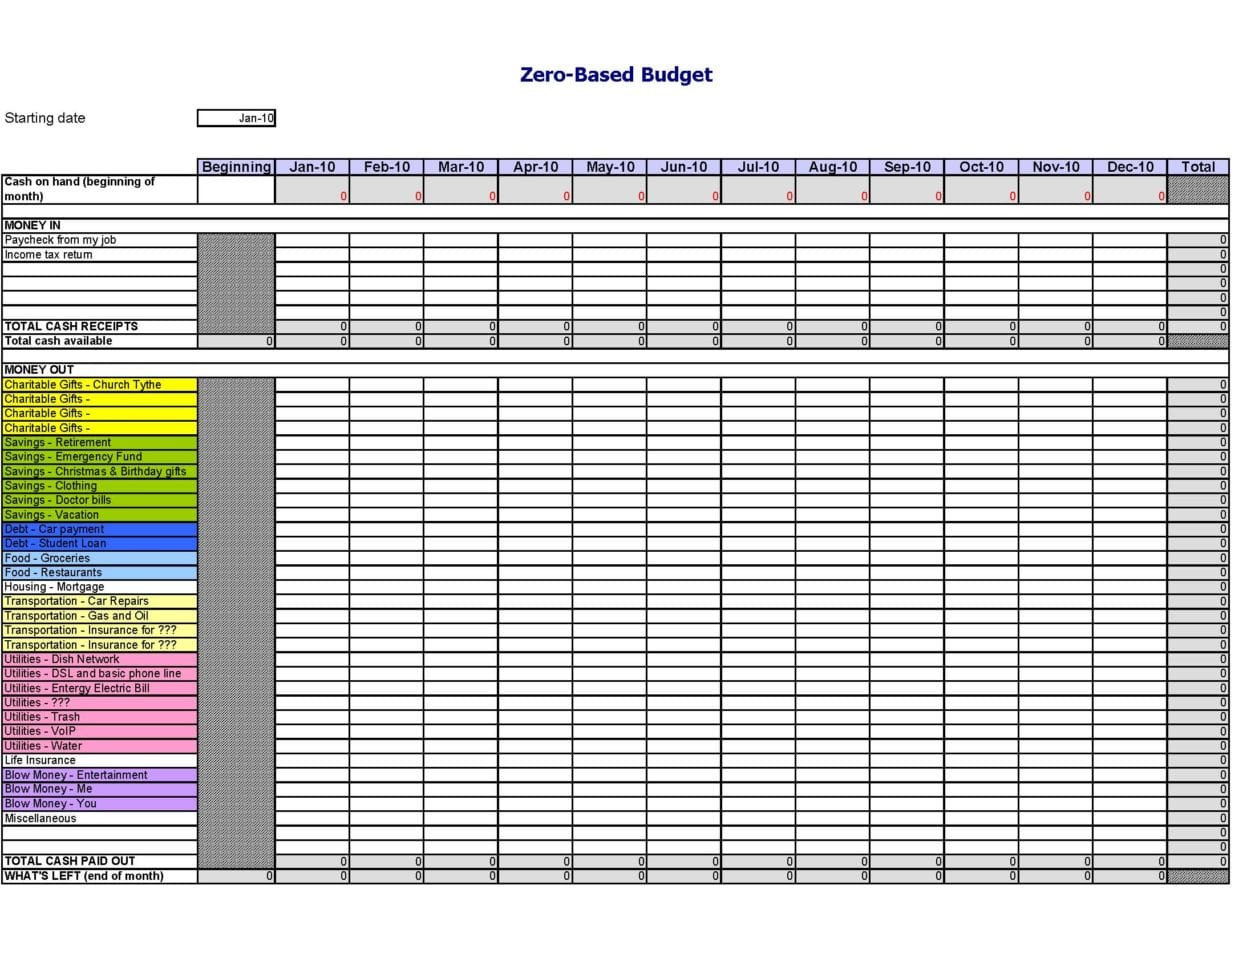 Best Personal Finance Spreadsheet Running Budget Template Credit Card Spreadsheet Template Personal Investment Plan Template Credit Card Log Spreadsheet Free Spreadsheet For Windows 10 Finance Spreadsheet Template Free  Finance Spreadsheet Template Free Personal Finance Spreadsheet Template Spreadsheet Templates for Busines